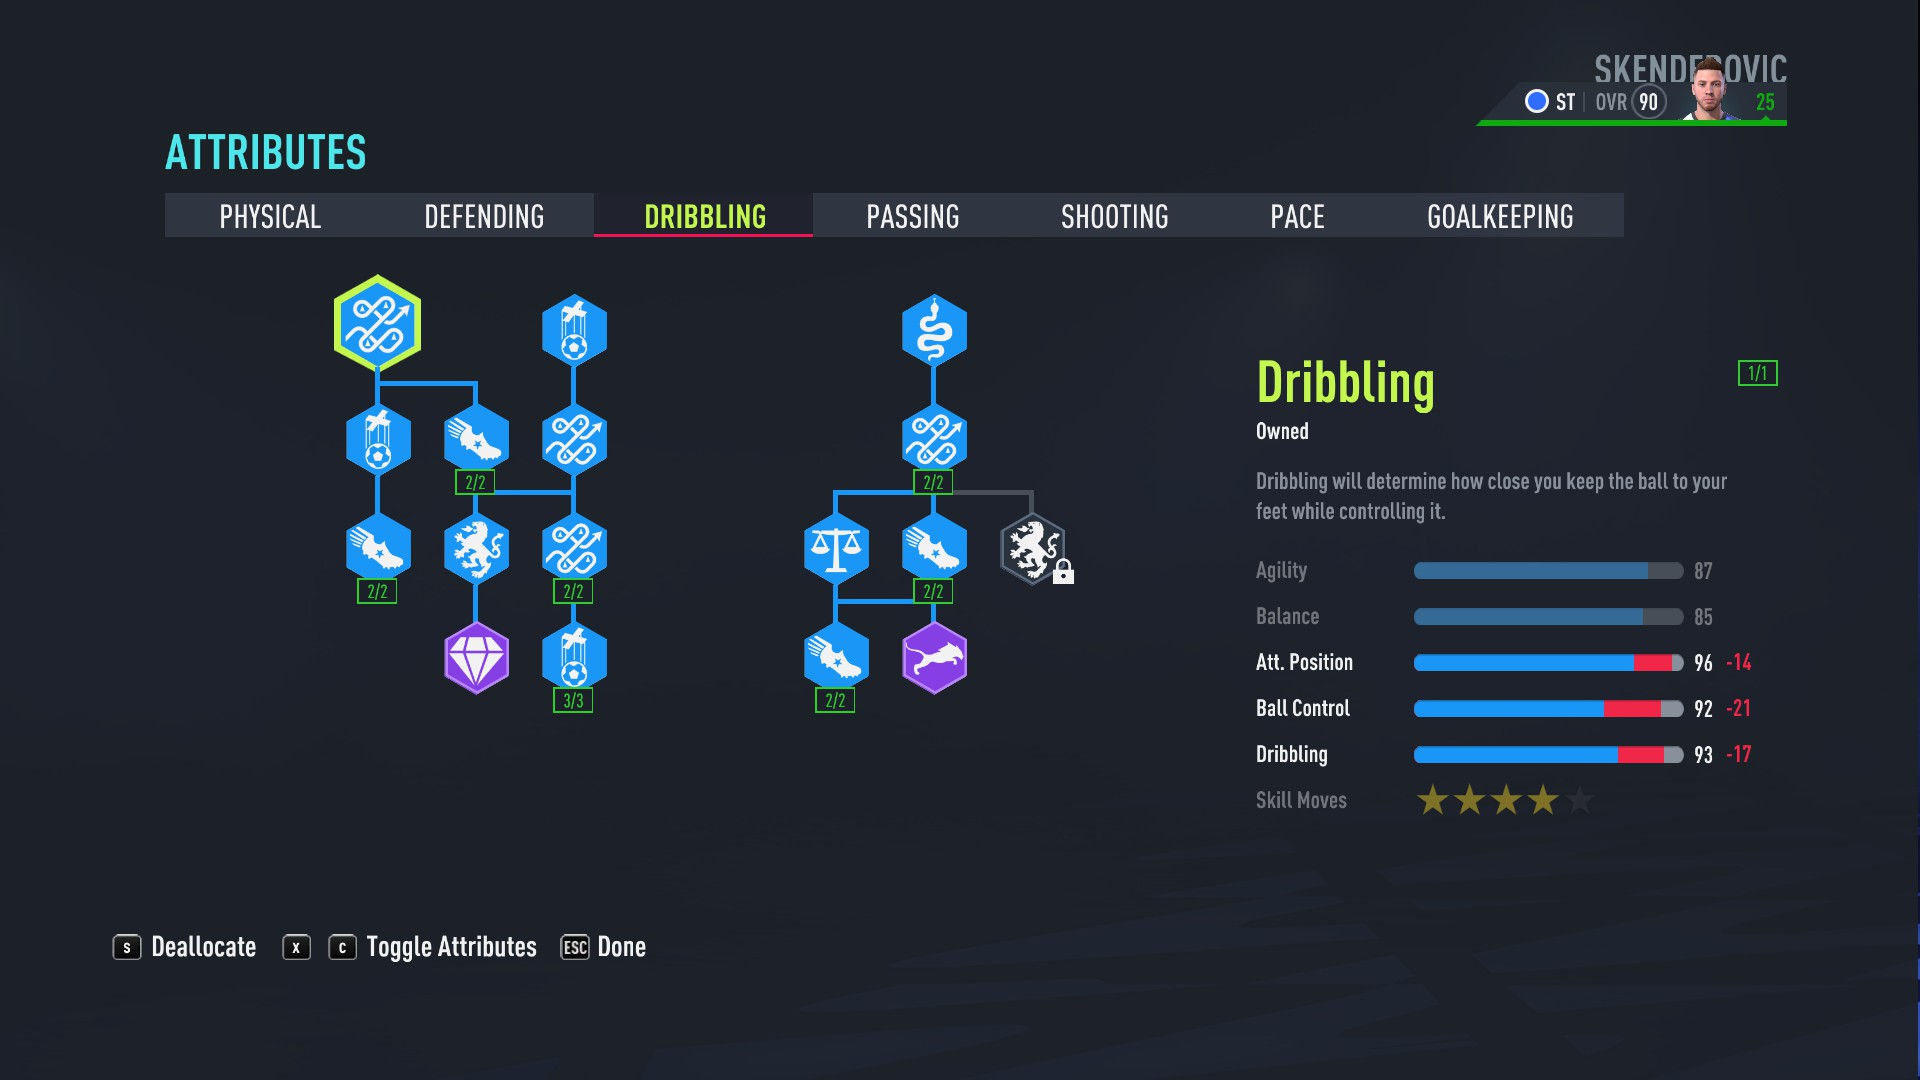 FIFA 22 - How to Reach 90 Rating in Fifa 22 Player Career Mode as a Striker Tips - Skill Points (Dribbling) - 3E27CF2